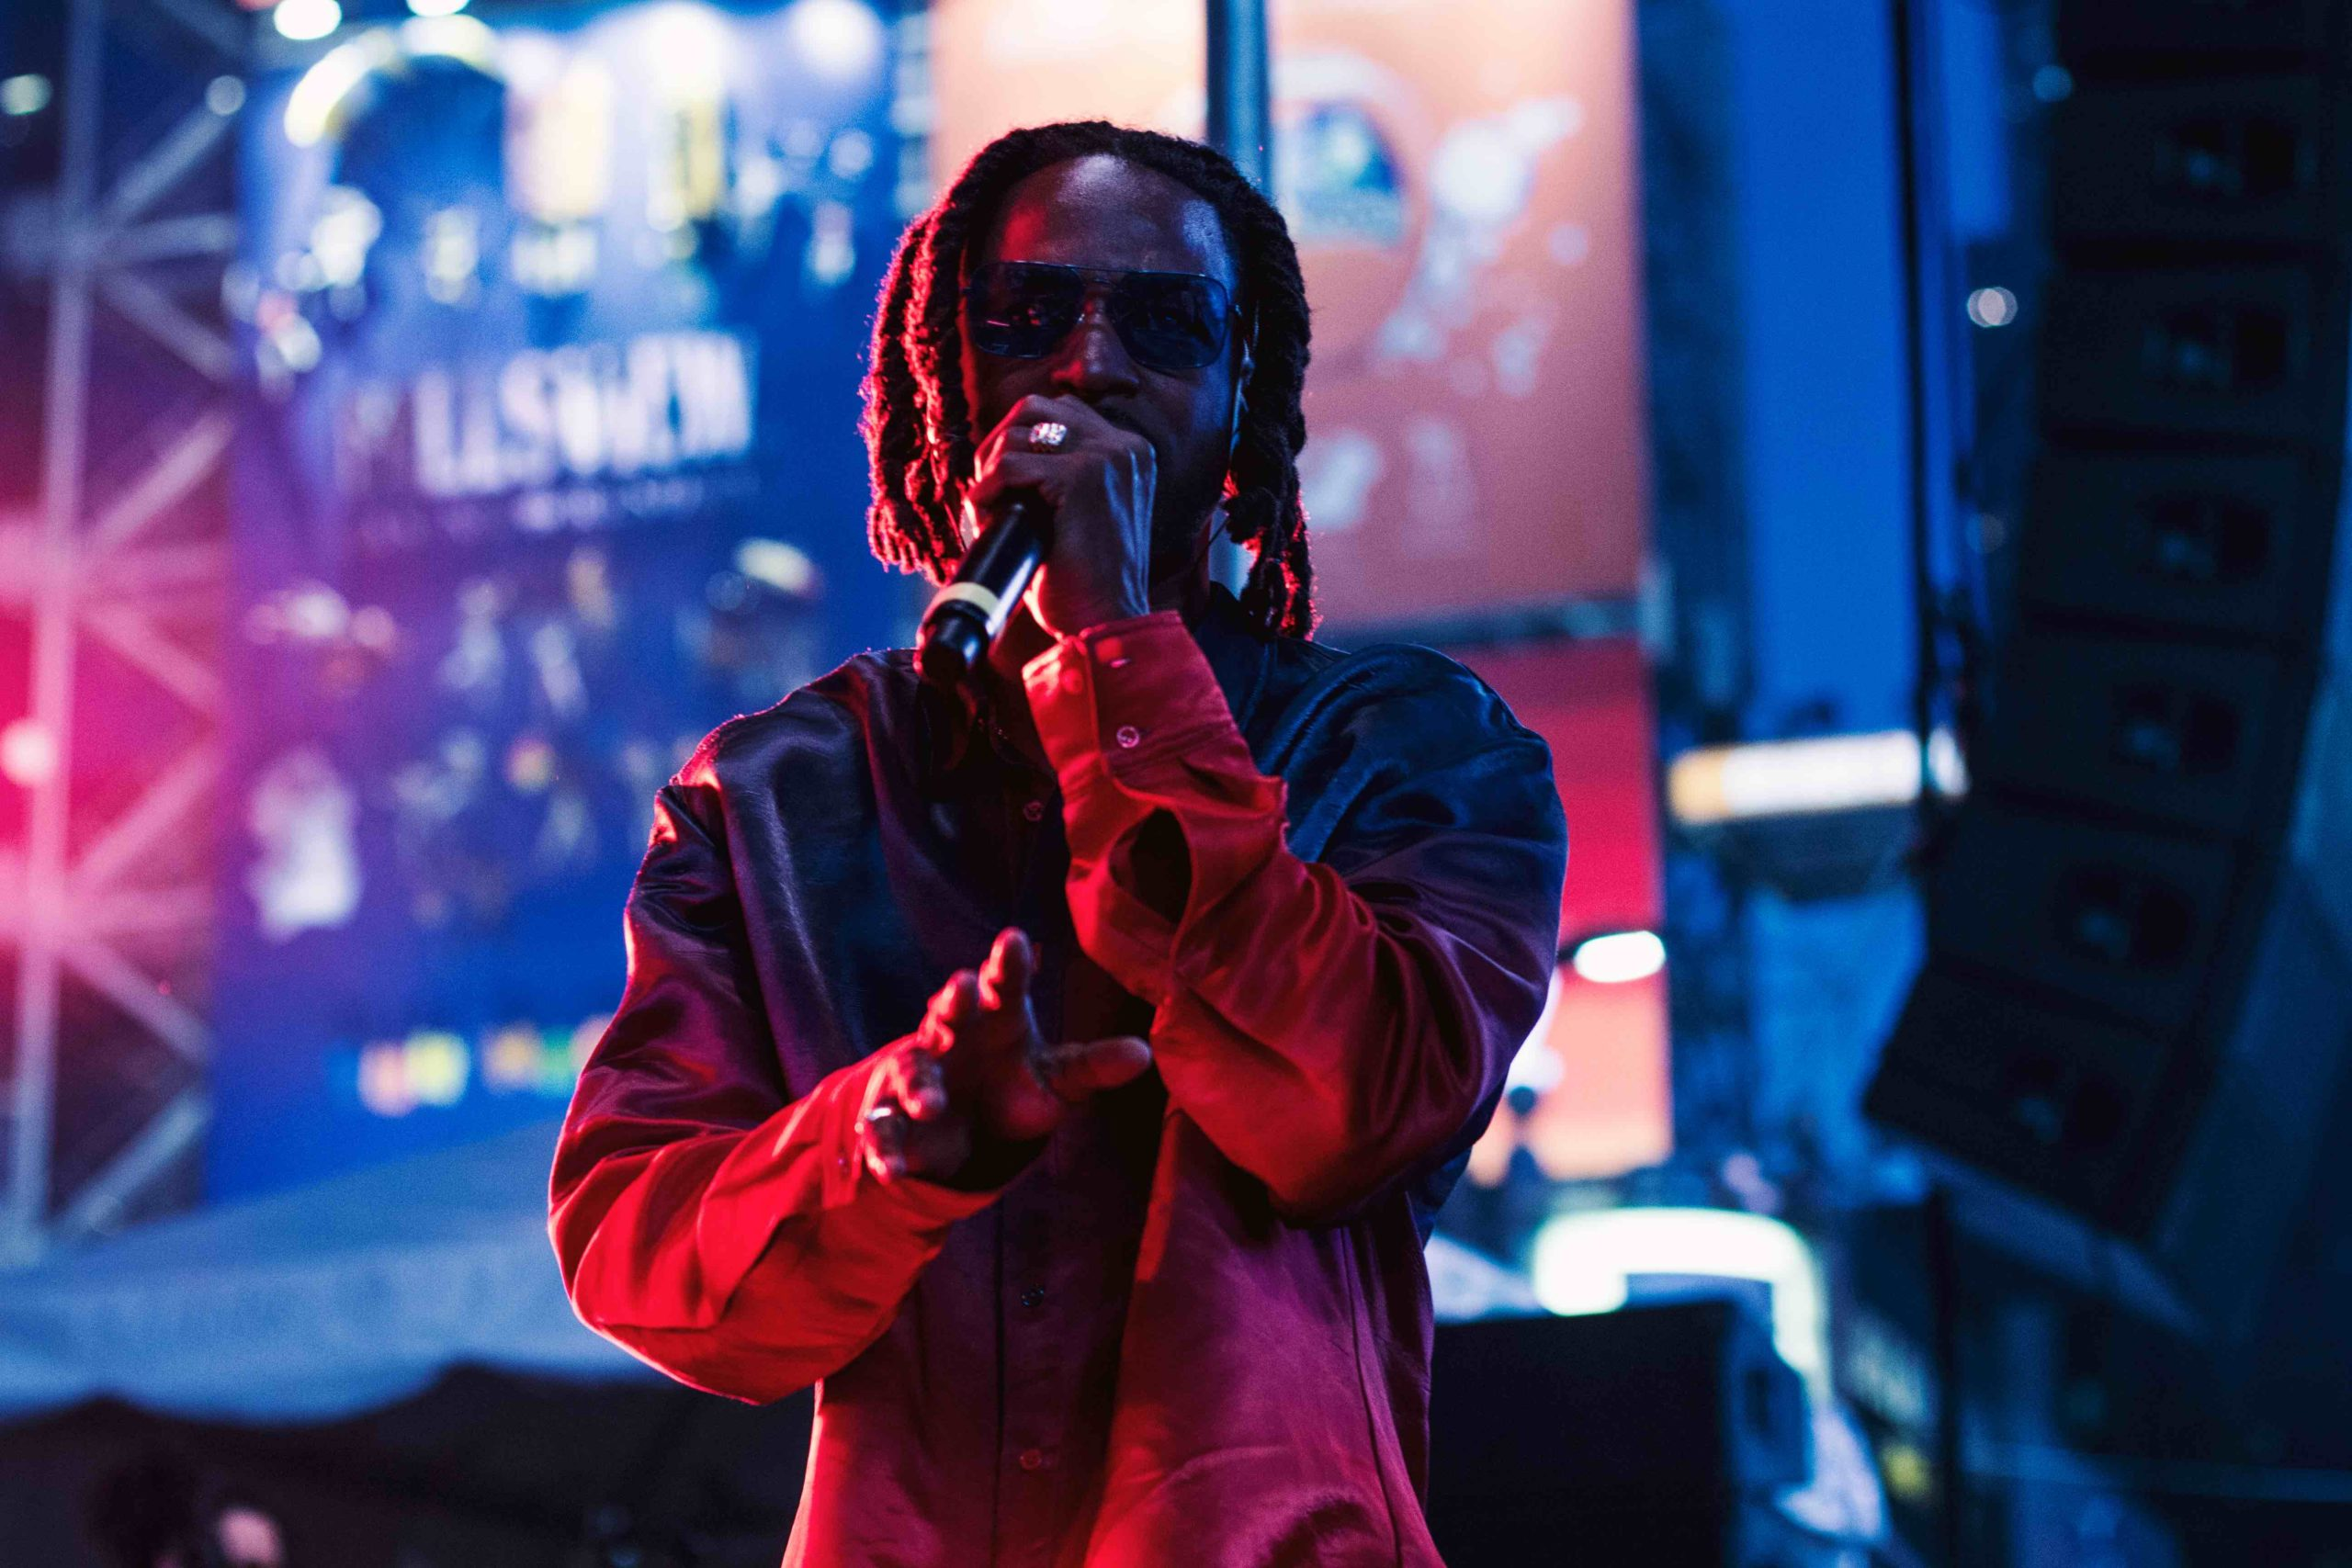 Jazz Cartier live at NXNE (2018)